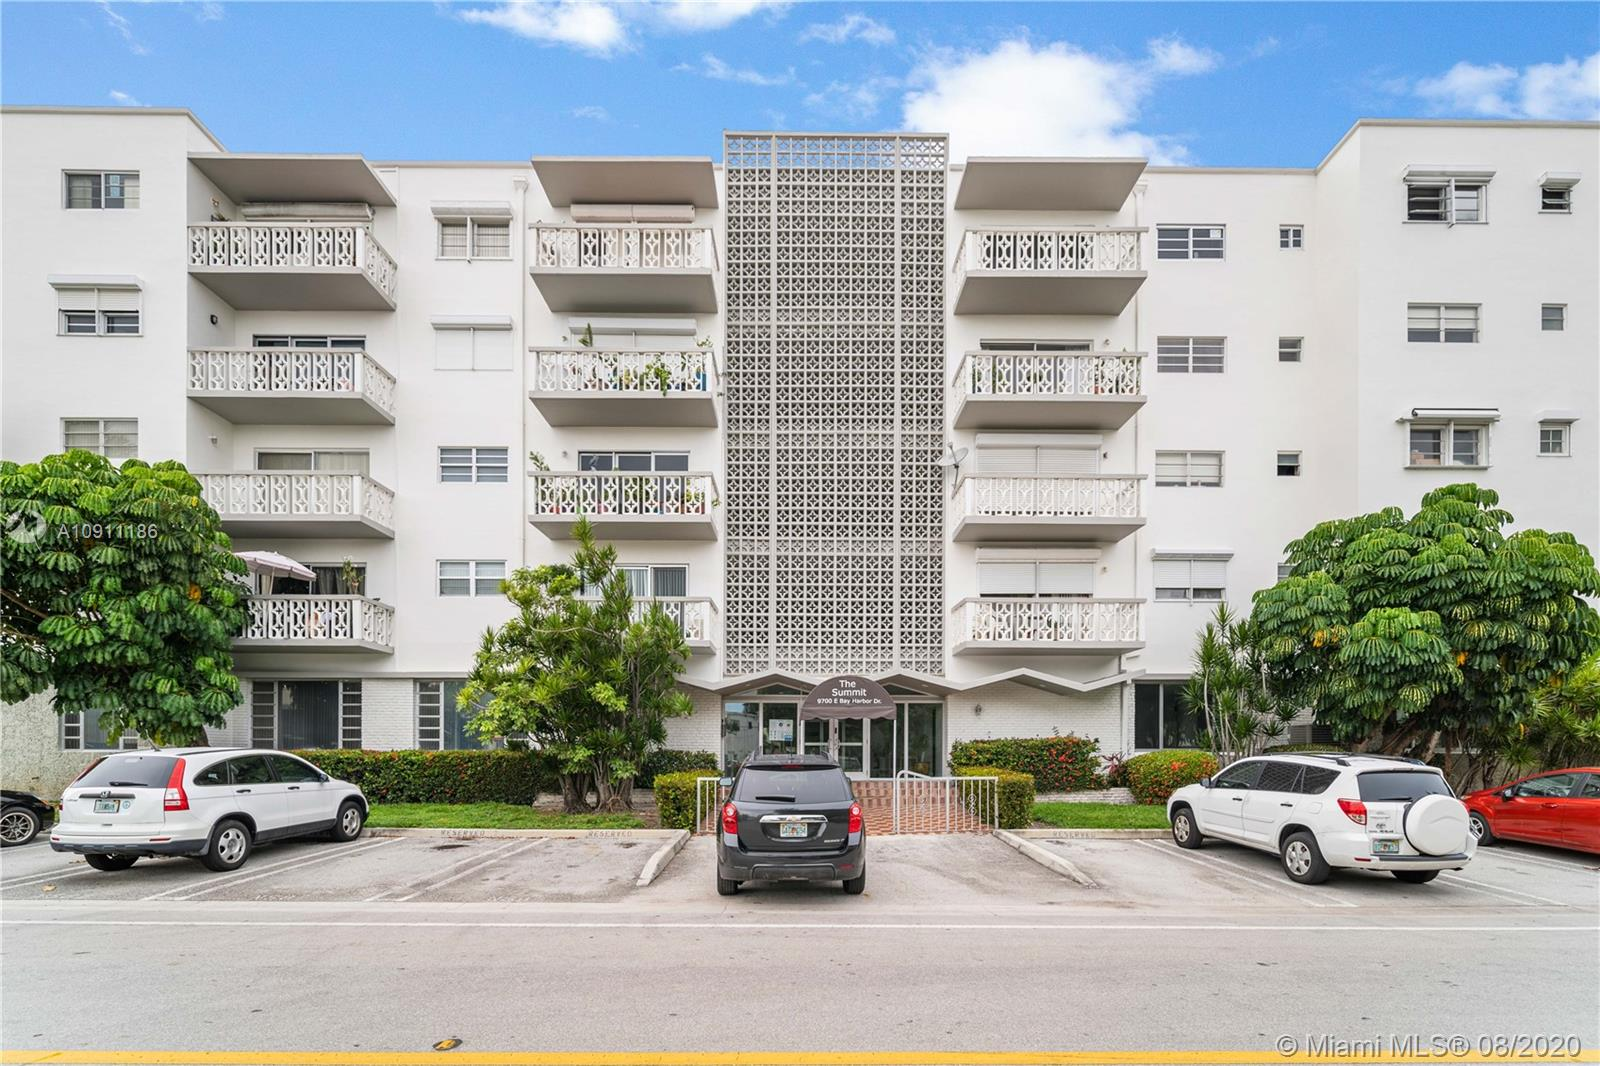 This corner 1 bedroom and 1 and a half bathroom unit has a brand new Beautifully redone kitchen with views to the intercoastal and pool area. Located in sought after Bay Harbor Island walk to the Beach ,shopping and restaurants. Unit has two walk in closets in the master bedroom along with new vanity's in each bathroom with 2 additional storage space closets  in the hall ways. IF that wasn't enough storage space the unit comes with an additional storage unit on the first floor. New electrical panel  Easy to show!